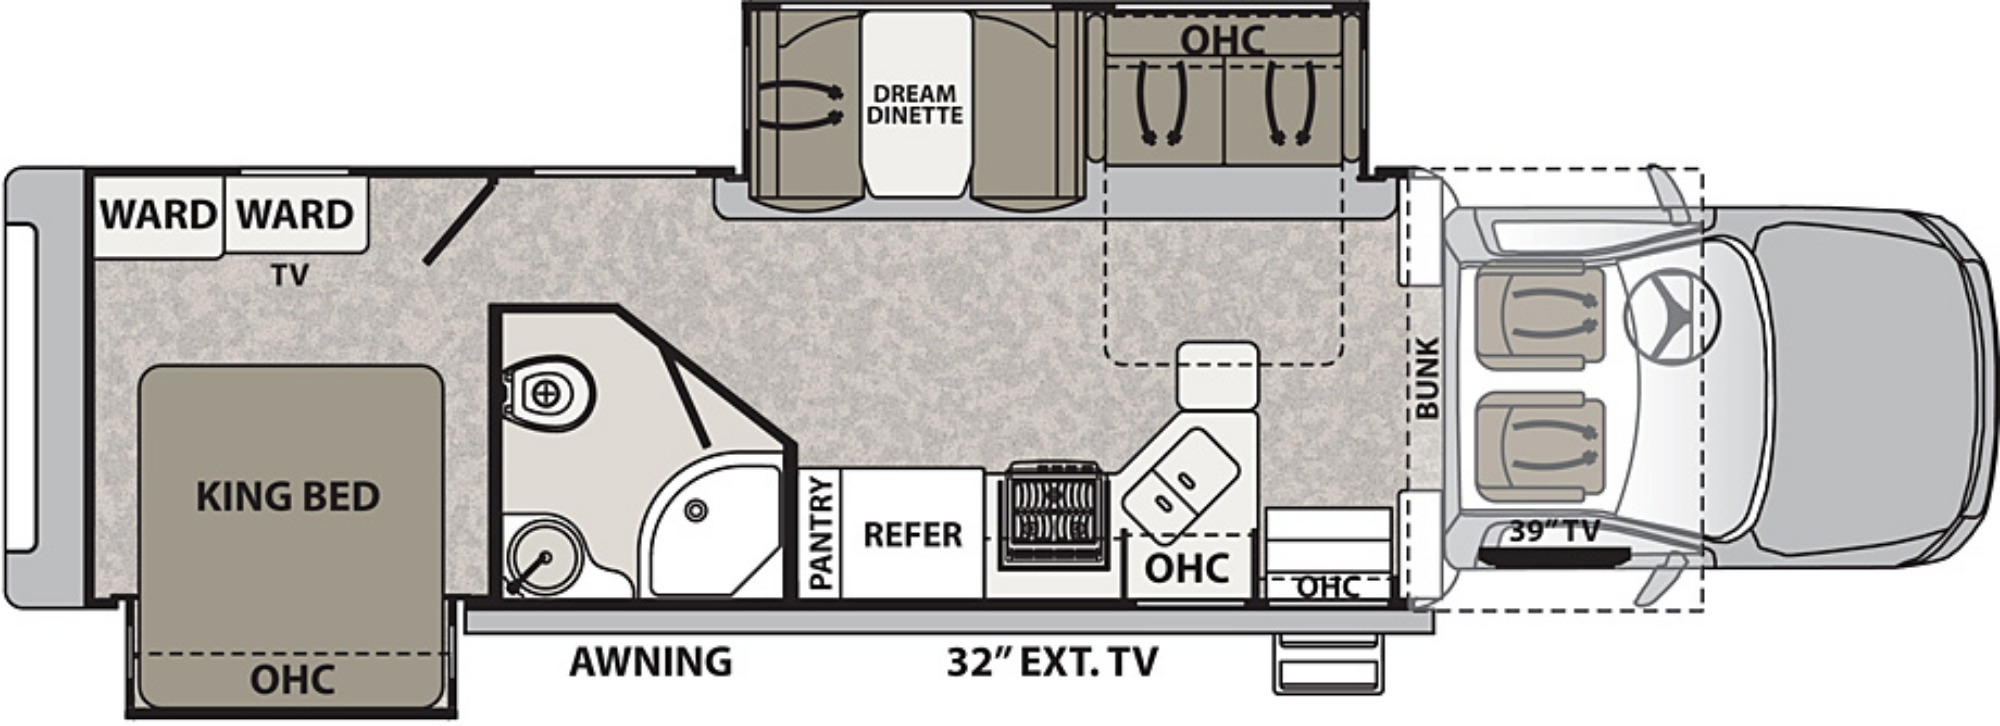 View Floor Plan for 2019 DYNAMAX ISATA 5 36DS